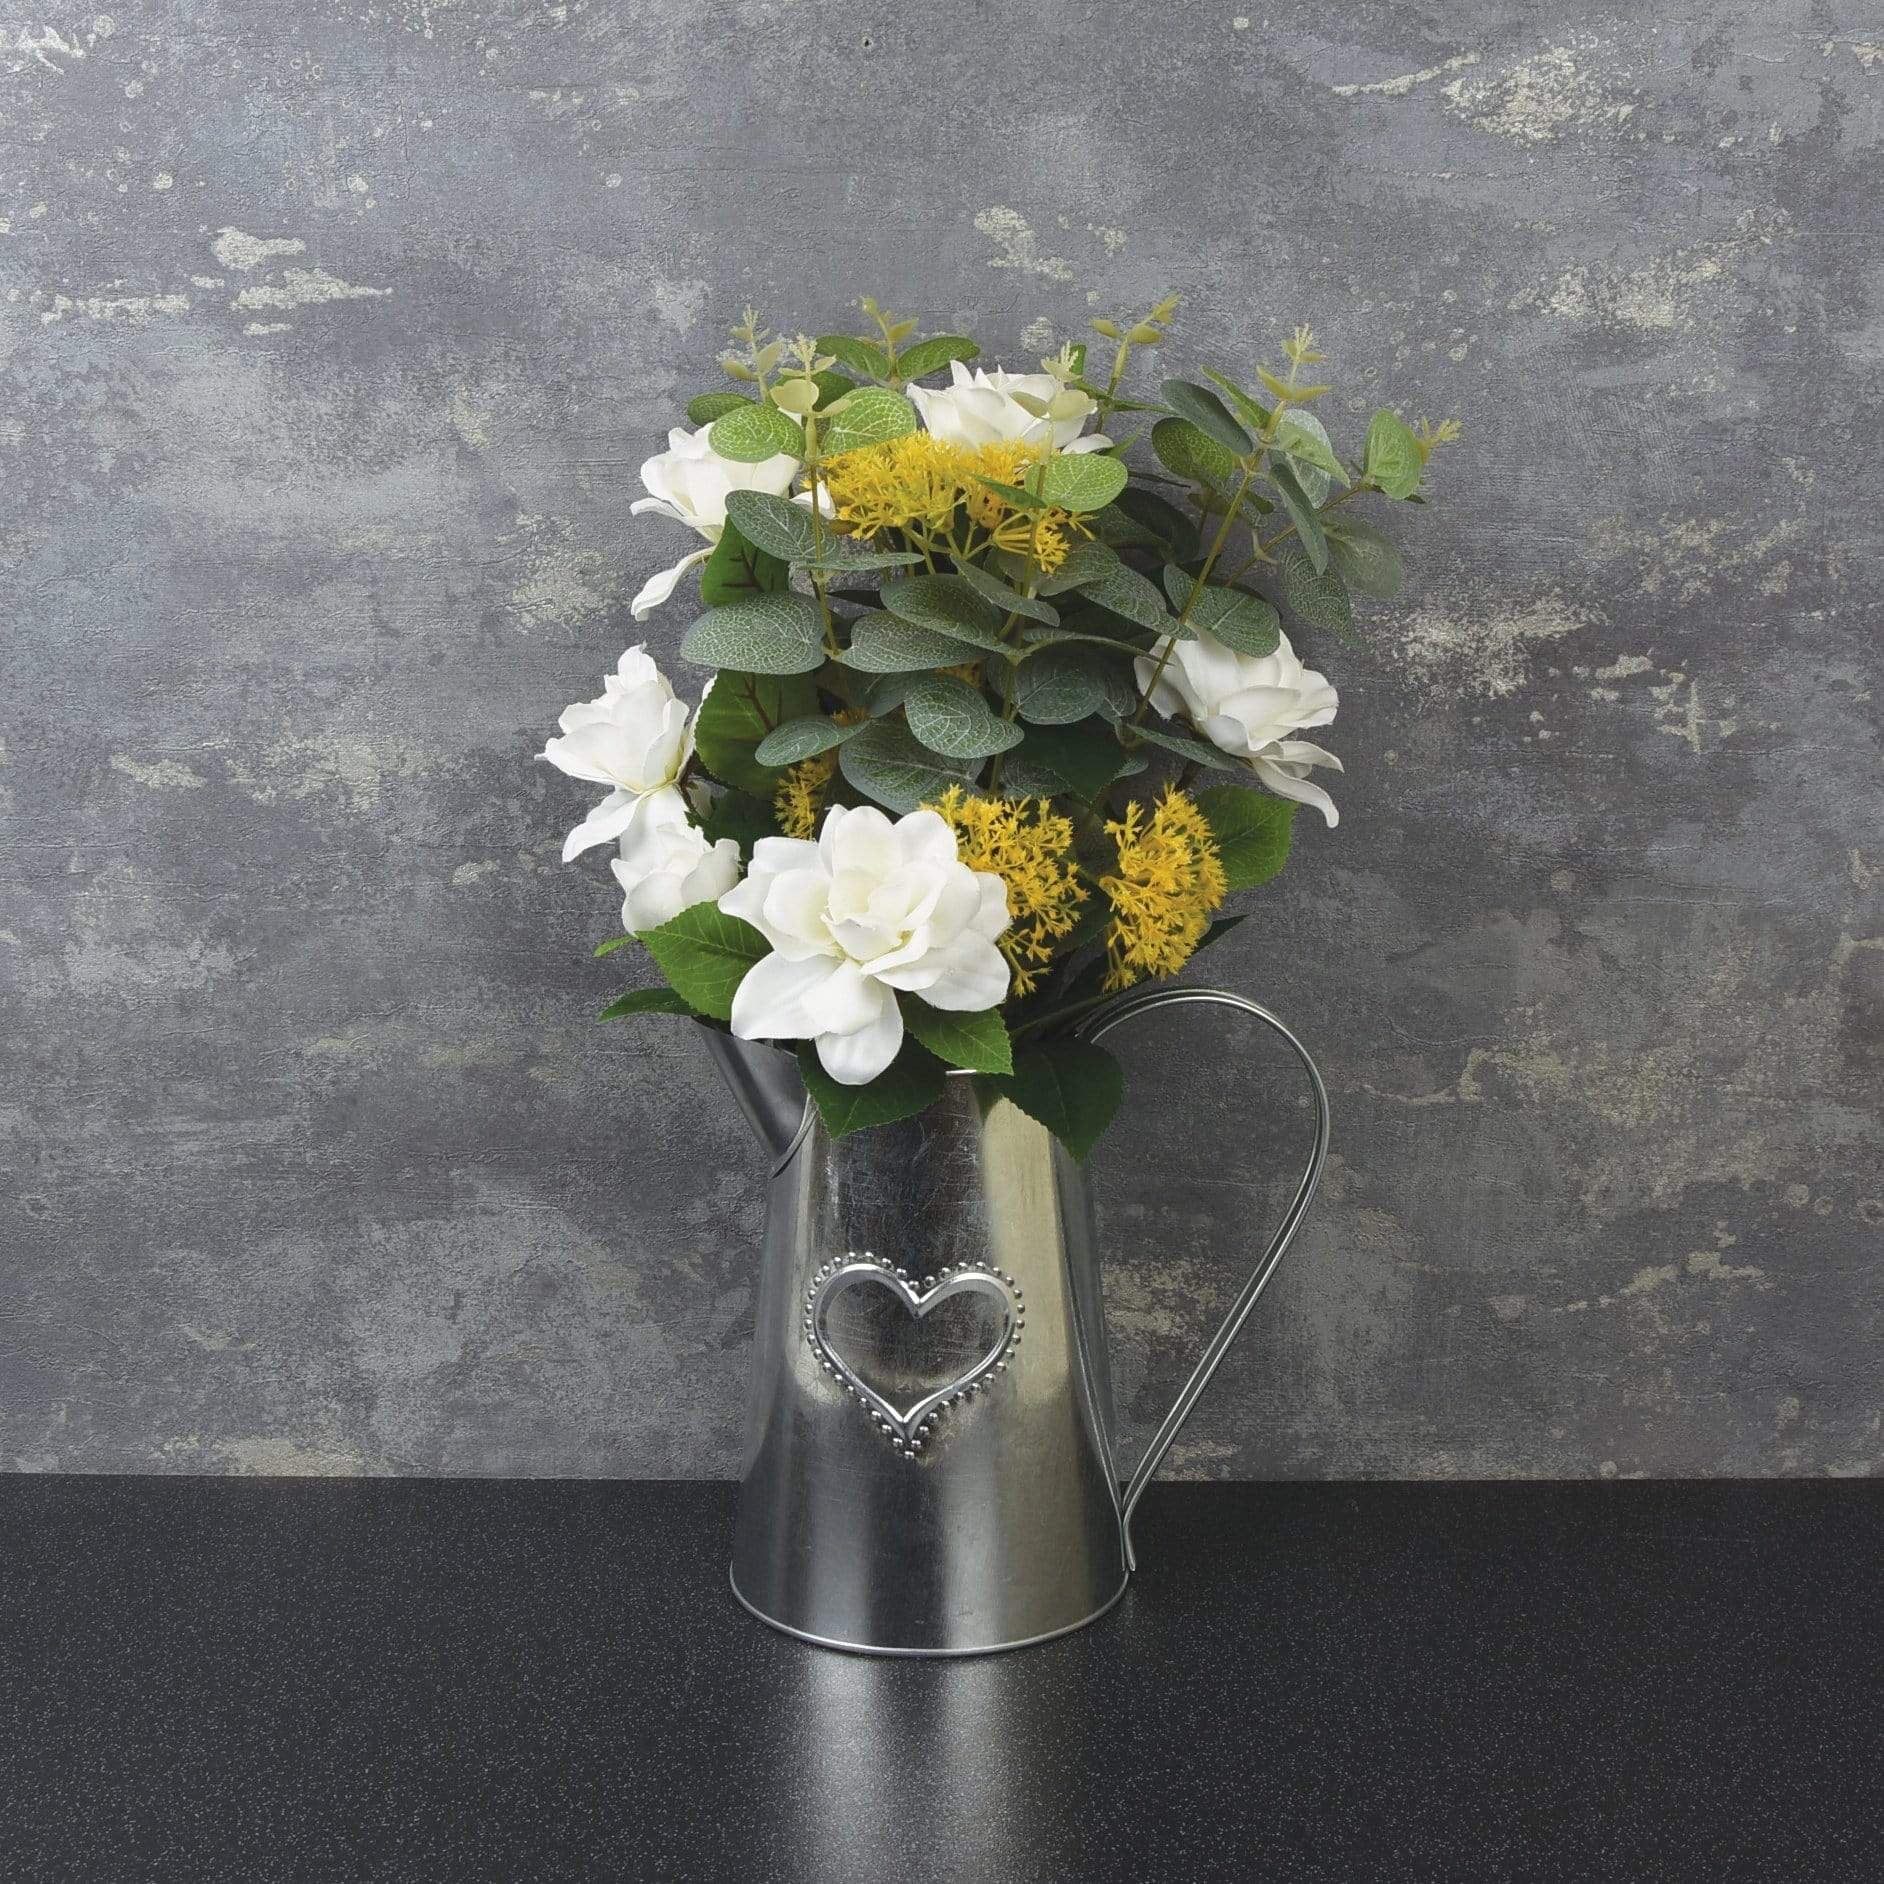 Candlelight Home Artificial Plants & Flowers Metal Jug with Camelia and Eucalyptus Yellow 41cm 1PK